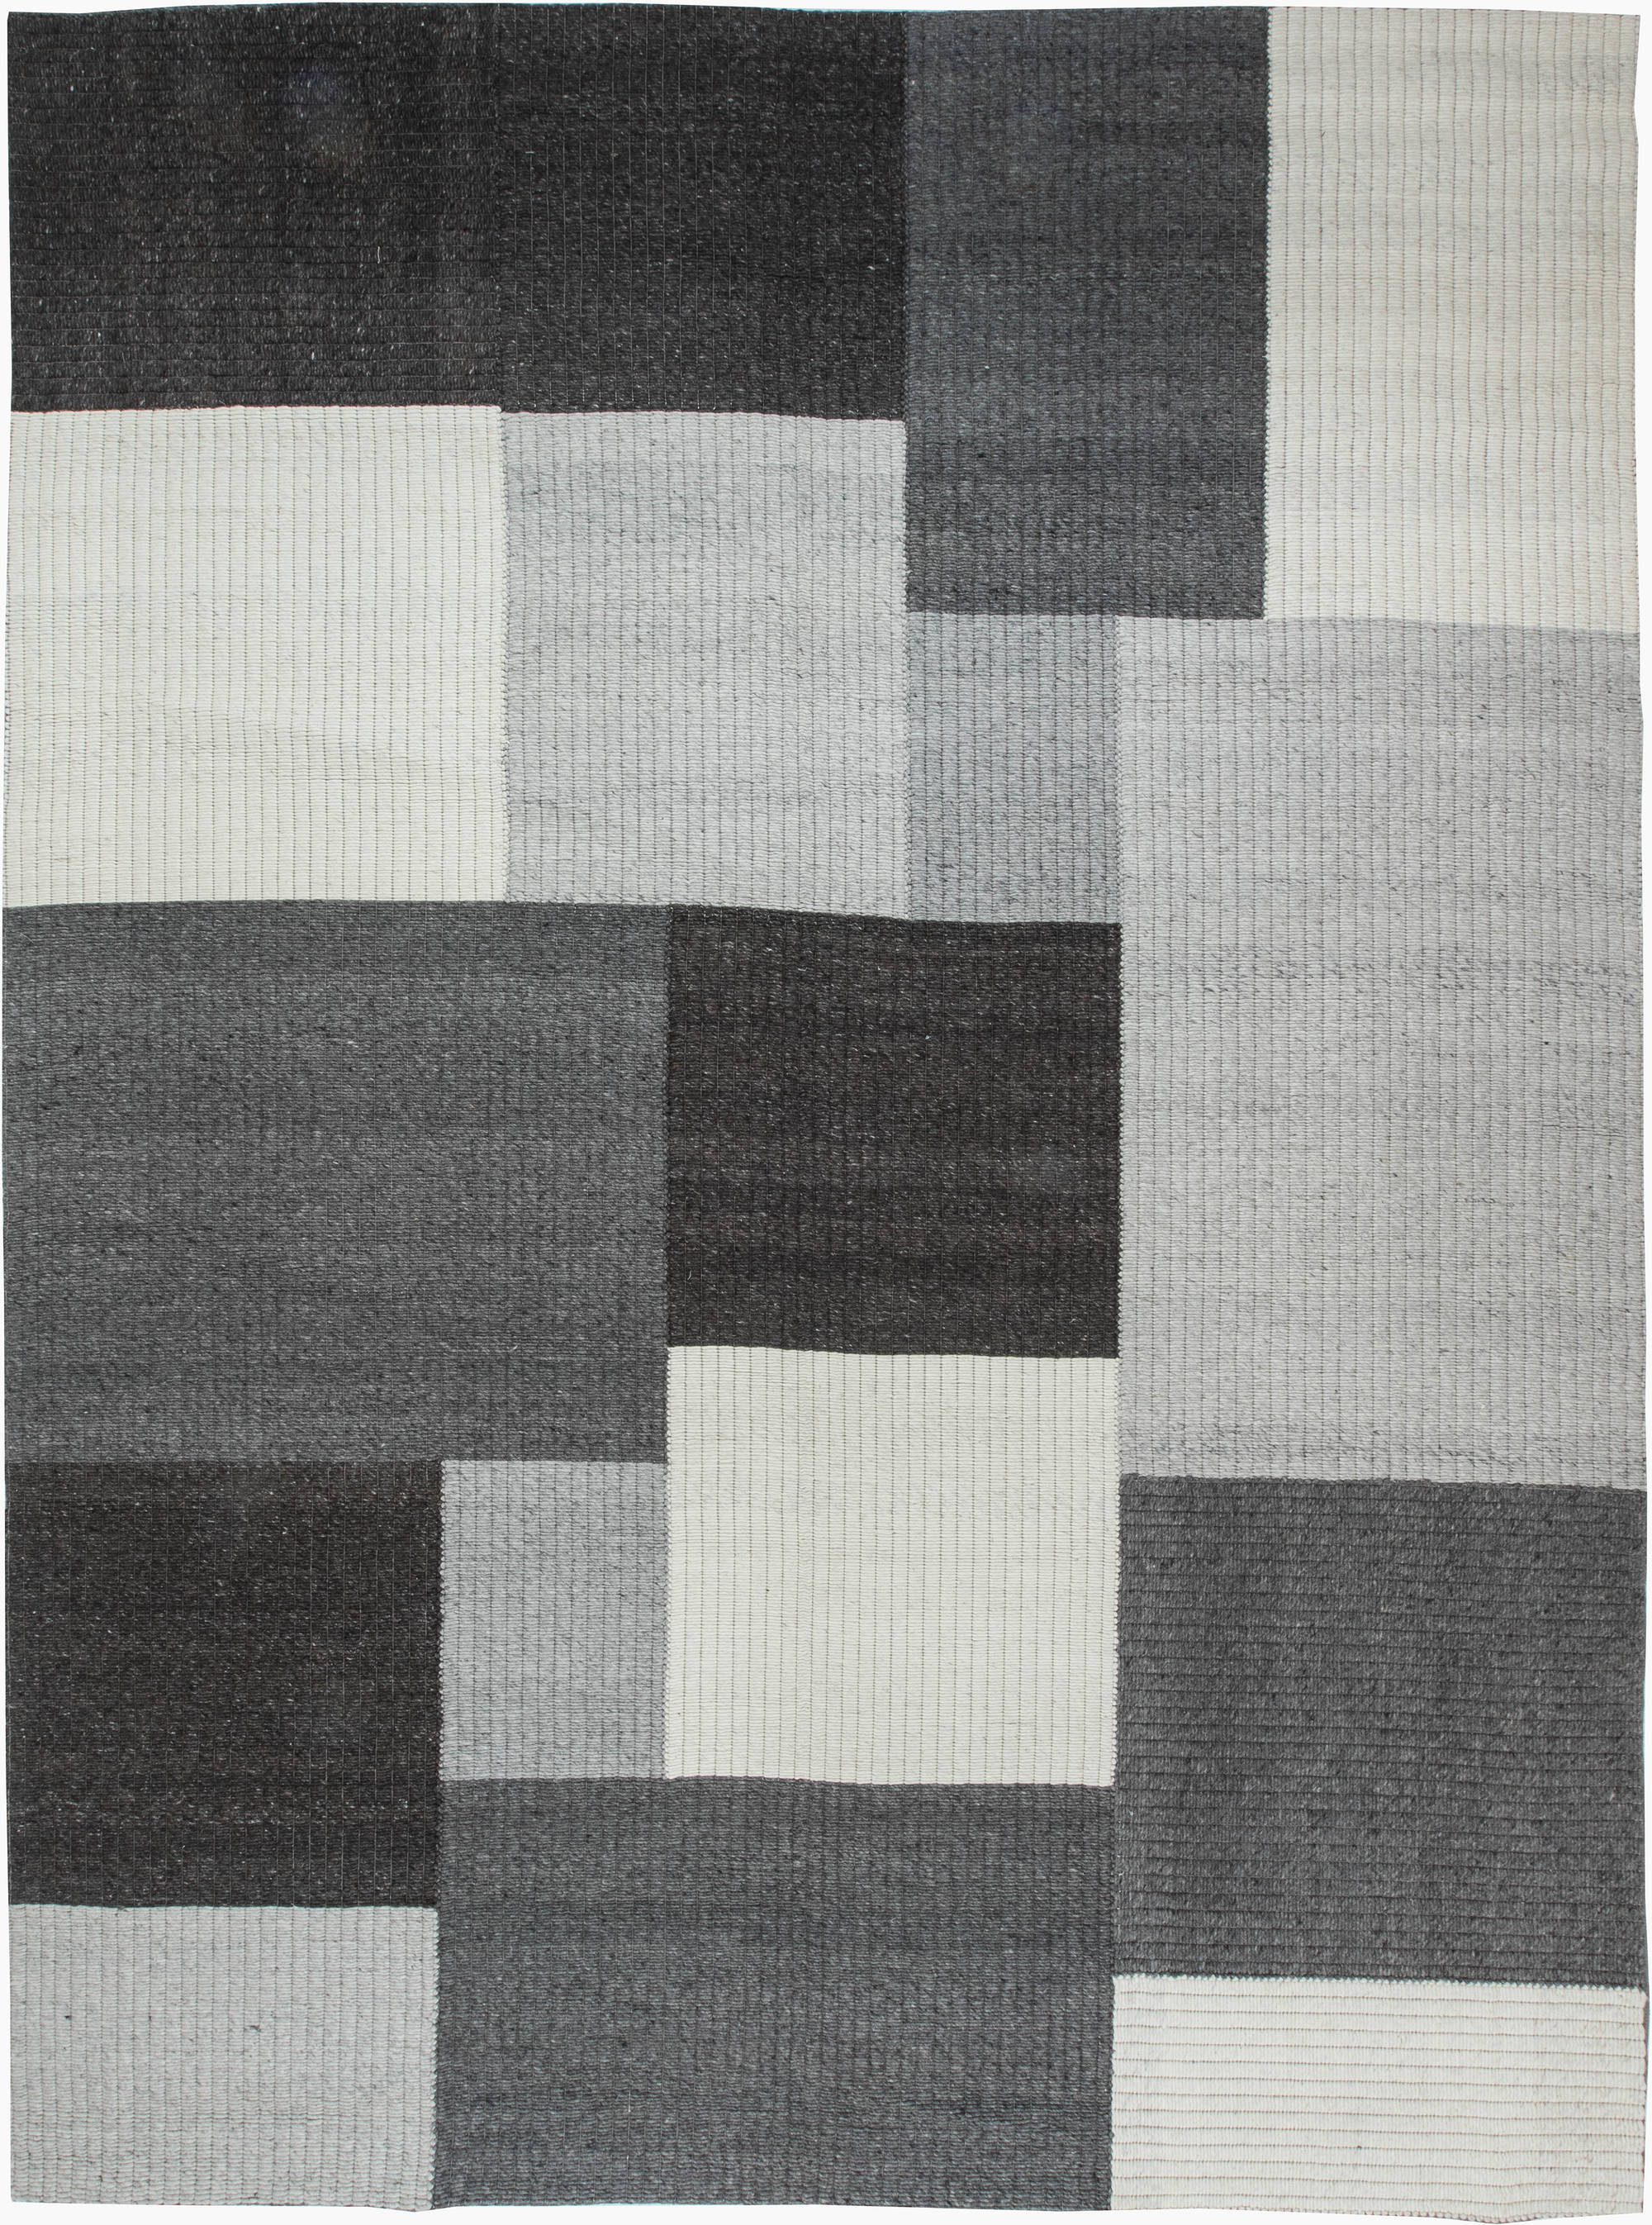 New Custom Rugs in Stock by Doris Leslie Blau New York